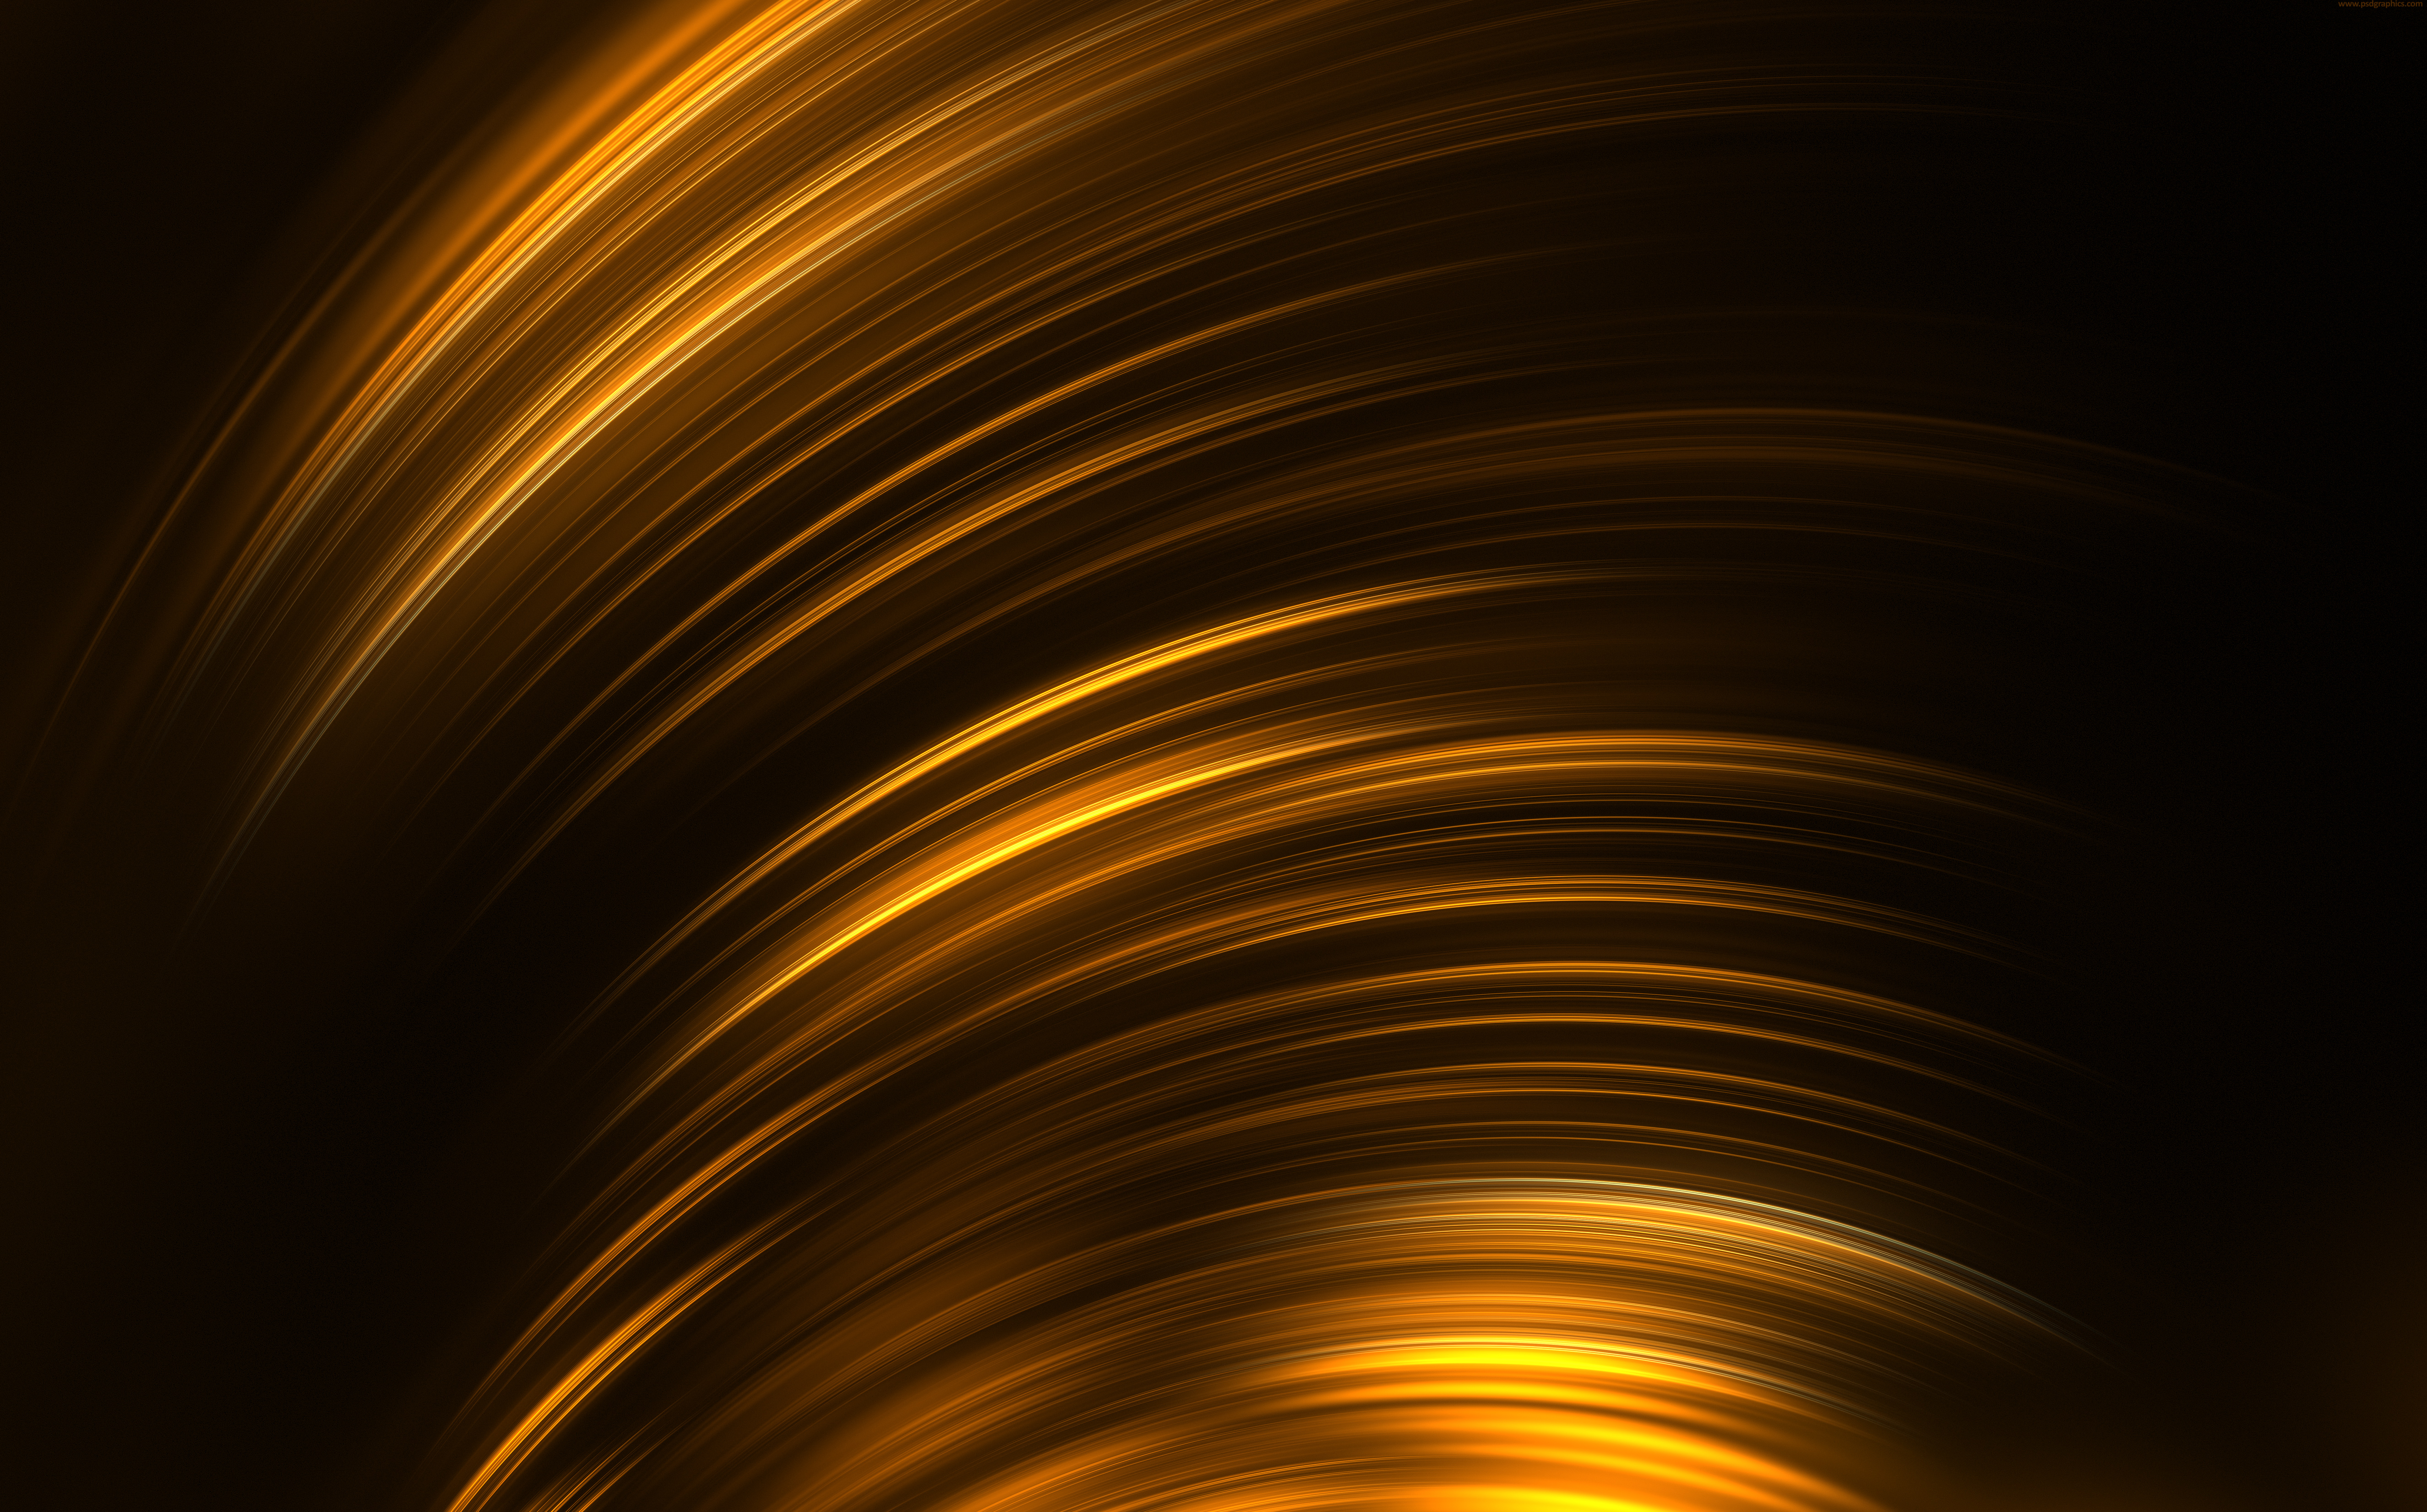 Fire light trails background | PSDGraphics